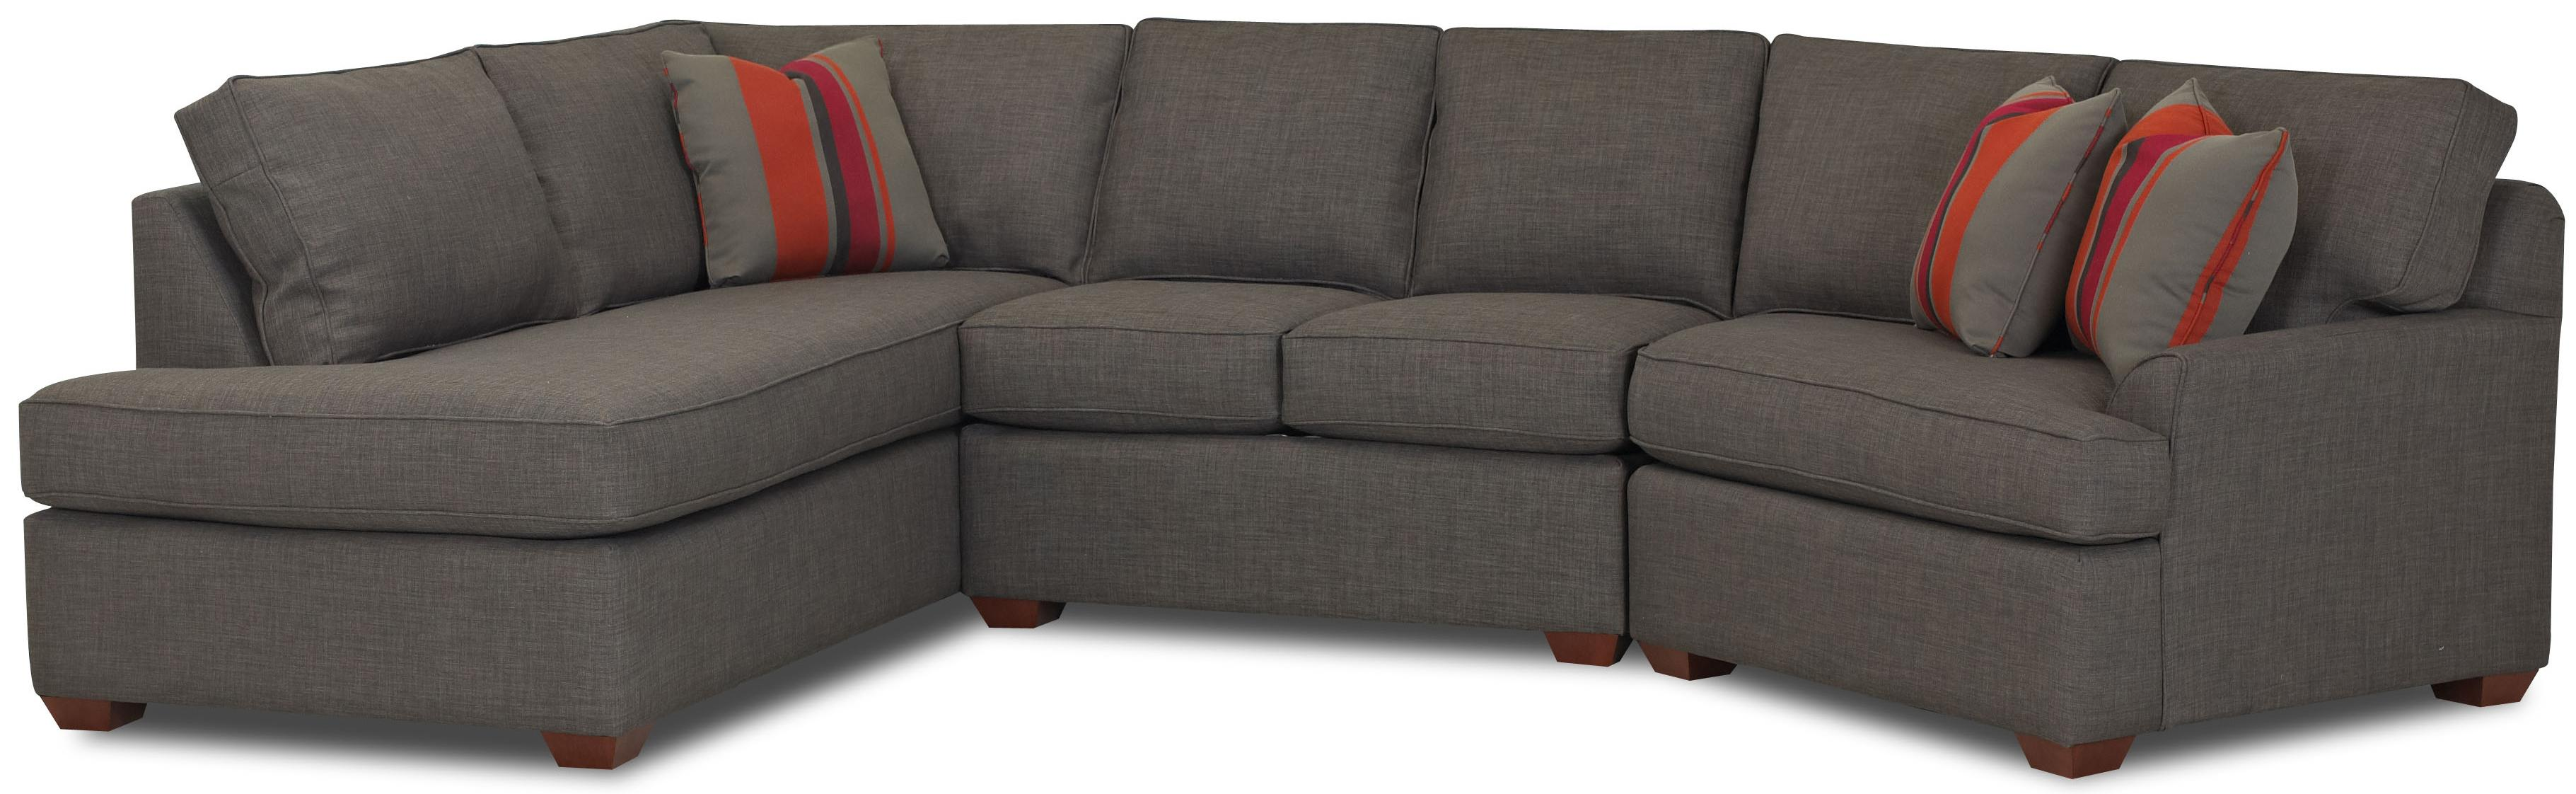 Contemporary Sectional Sofa with Right Chaise